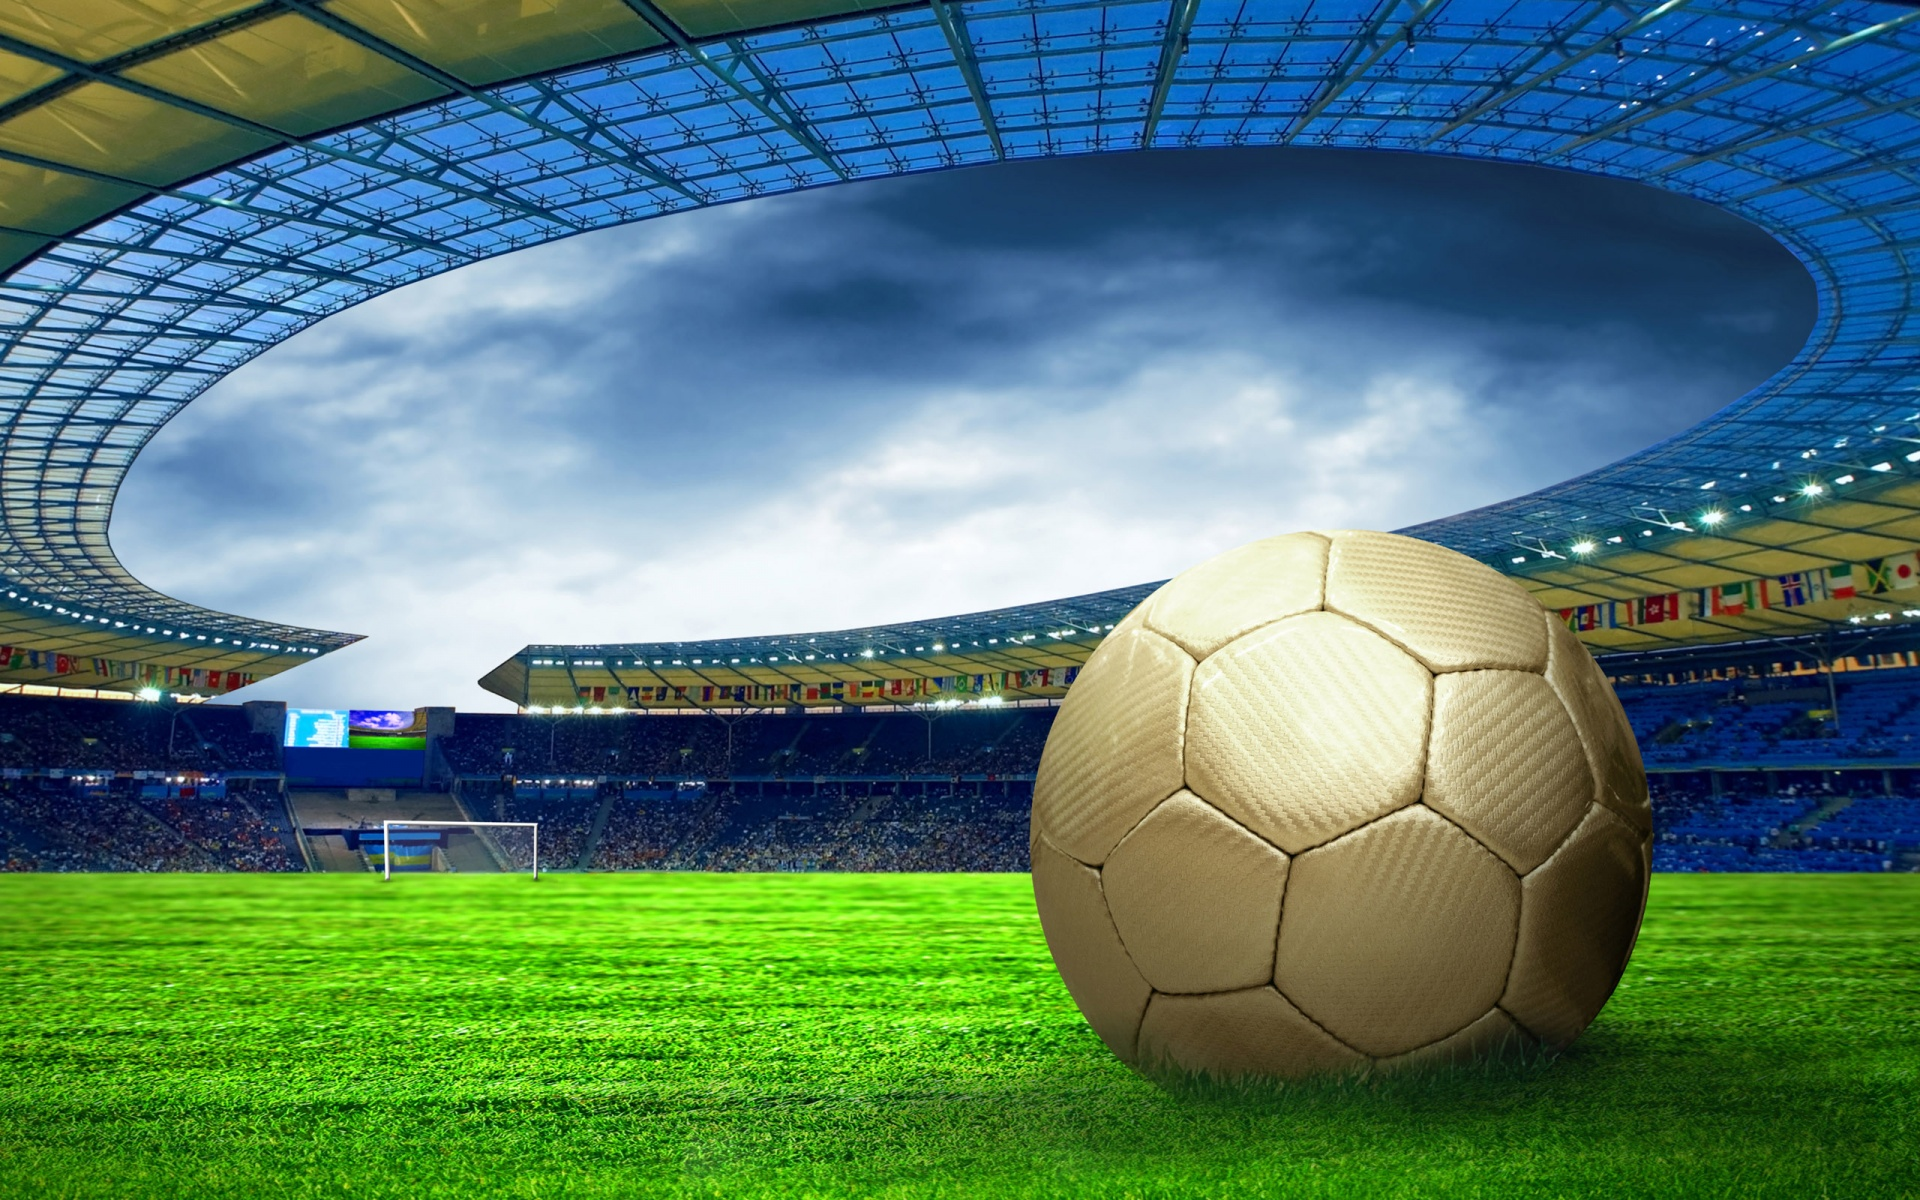 Soccer ball on the field wallpapers | Soccer ball on the ...